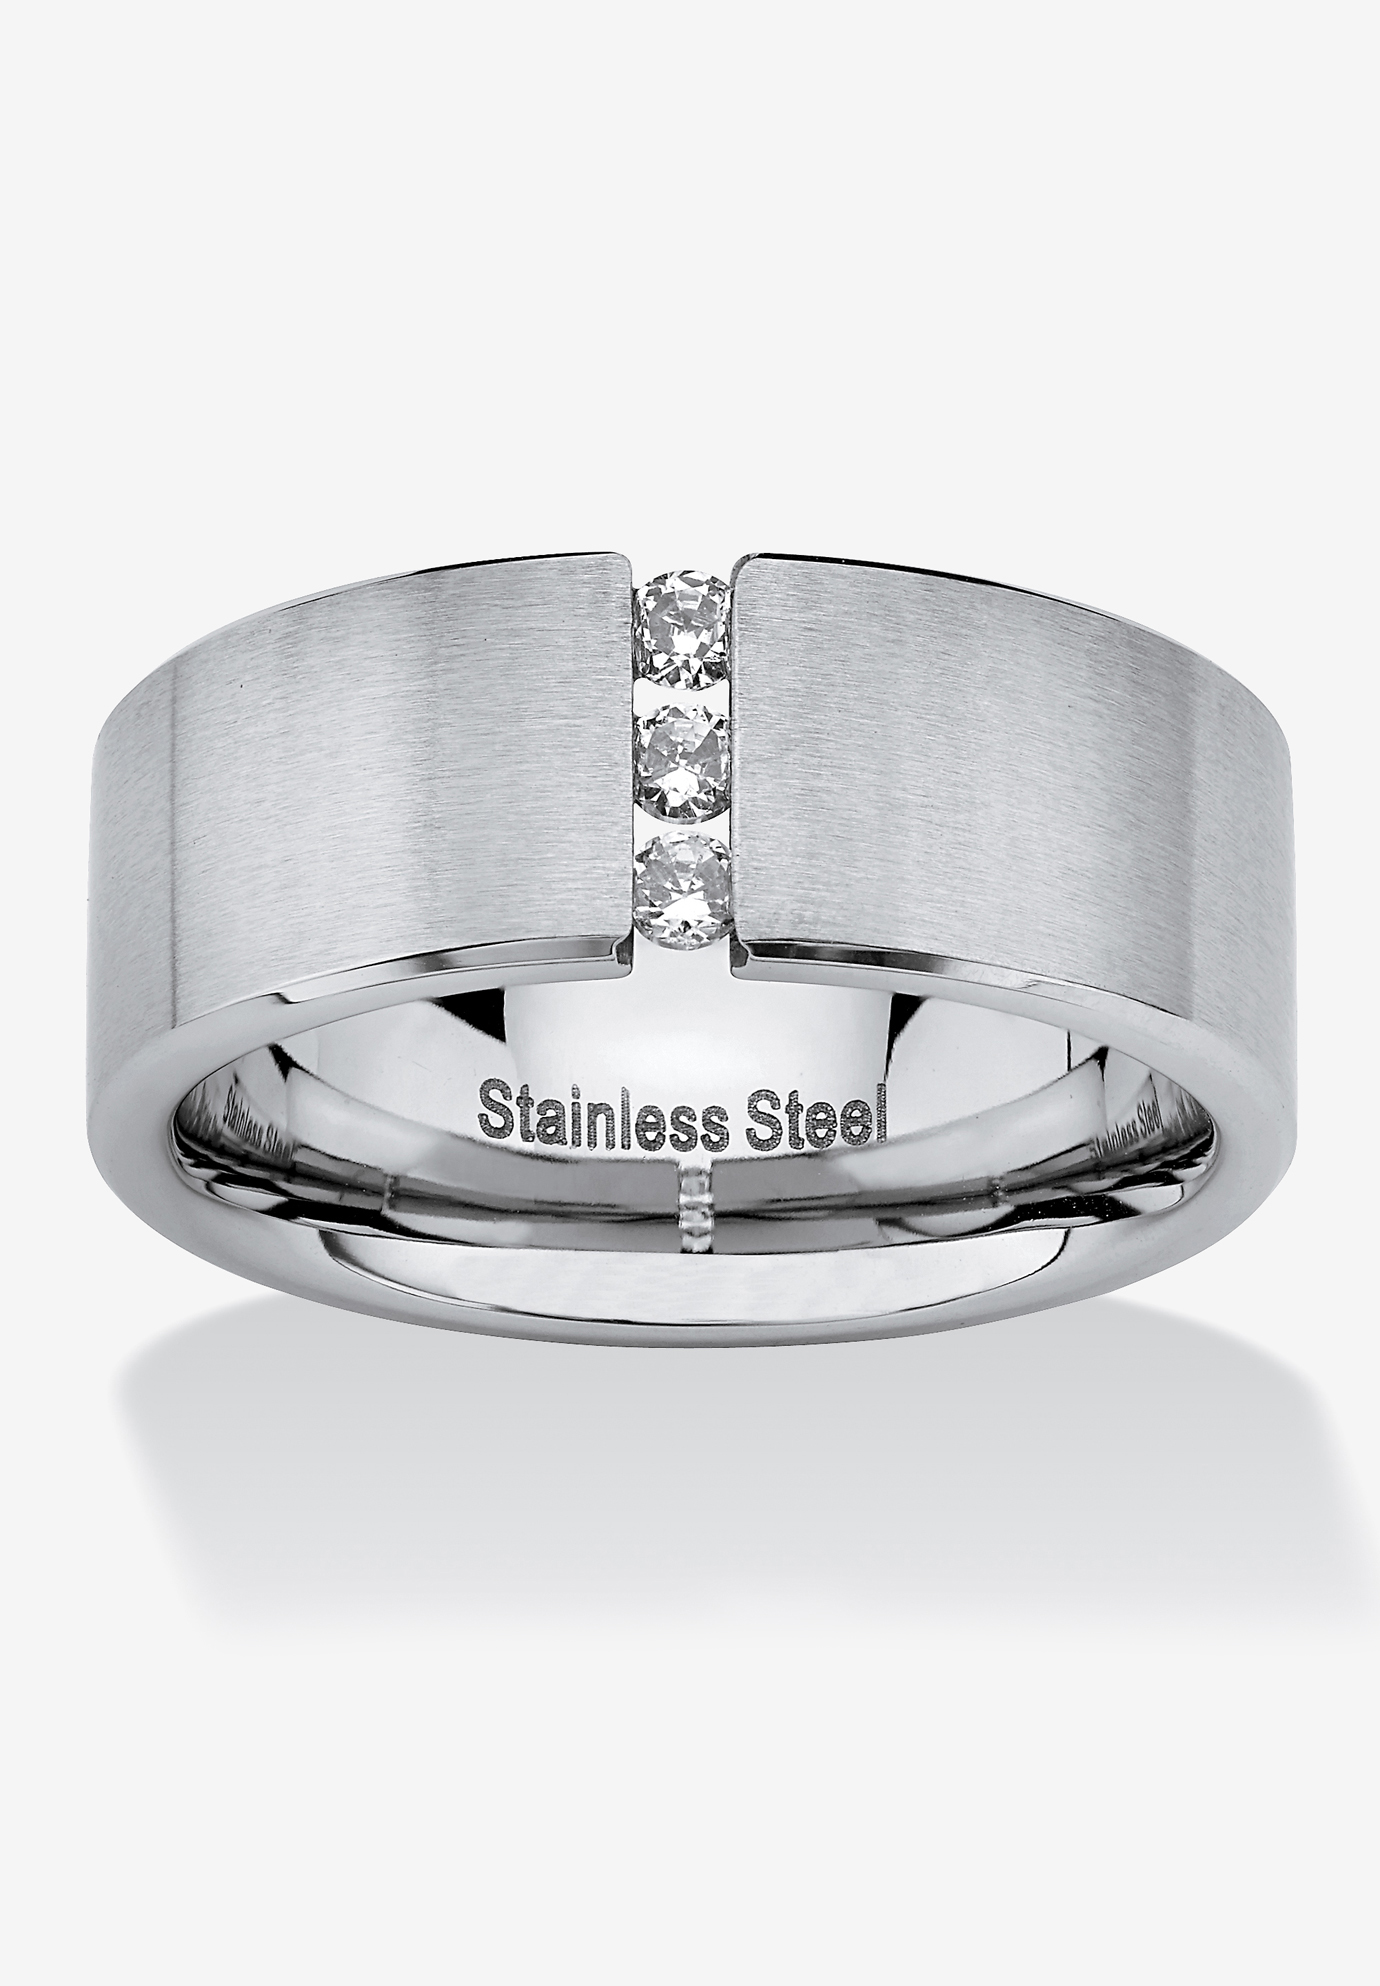 Stainless Steel Cubic Zirconia Brushed Wedding Band Ring,